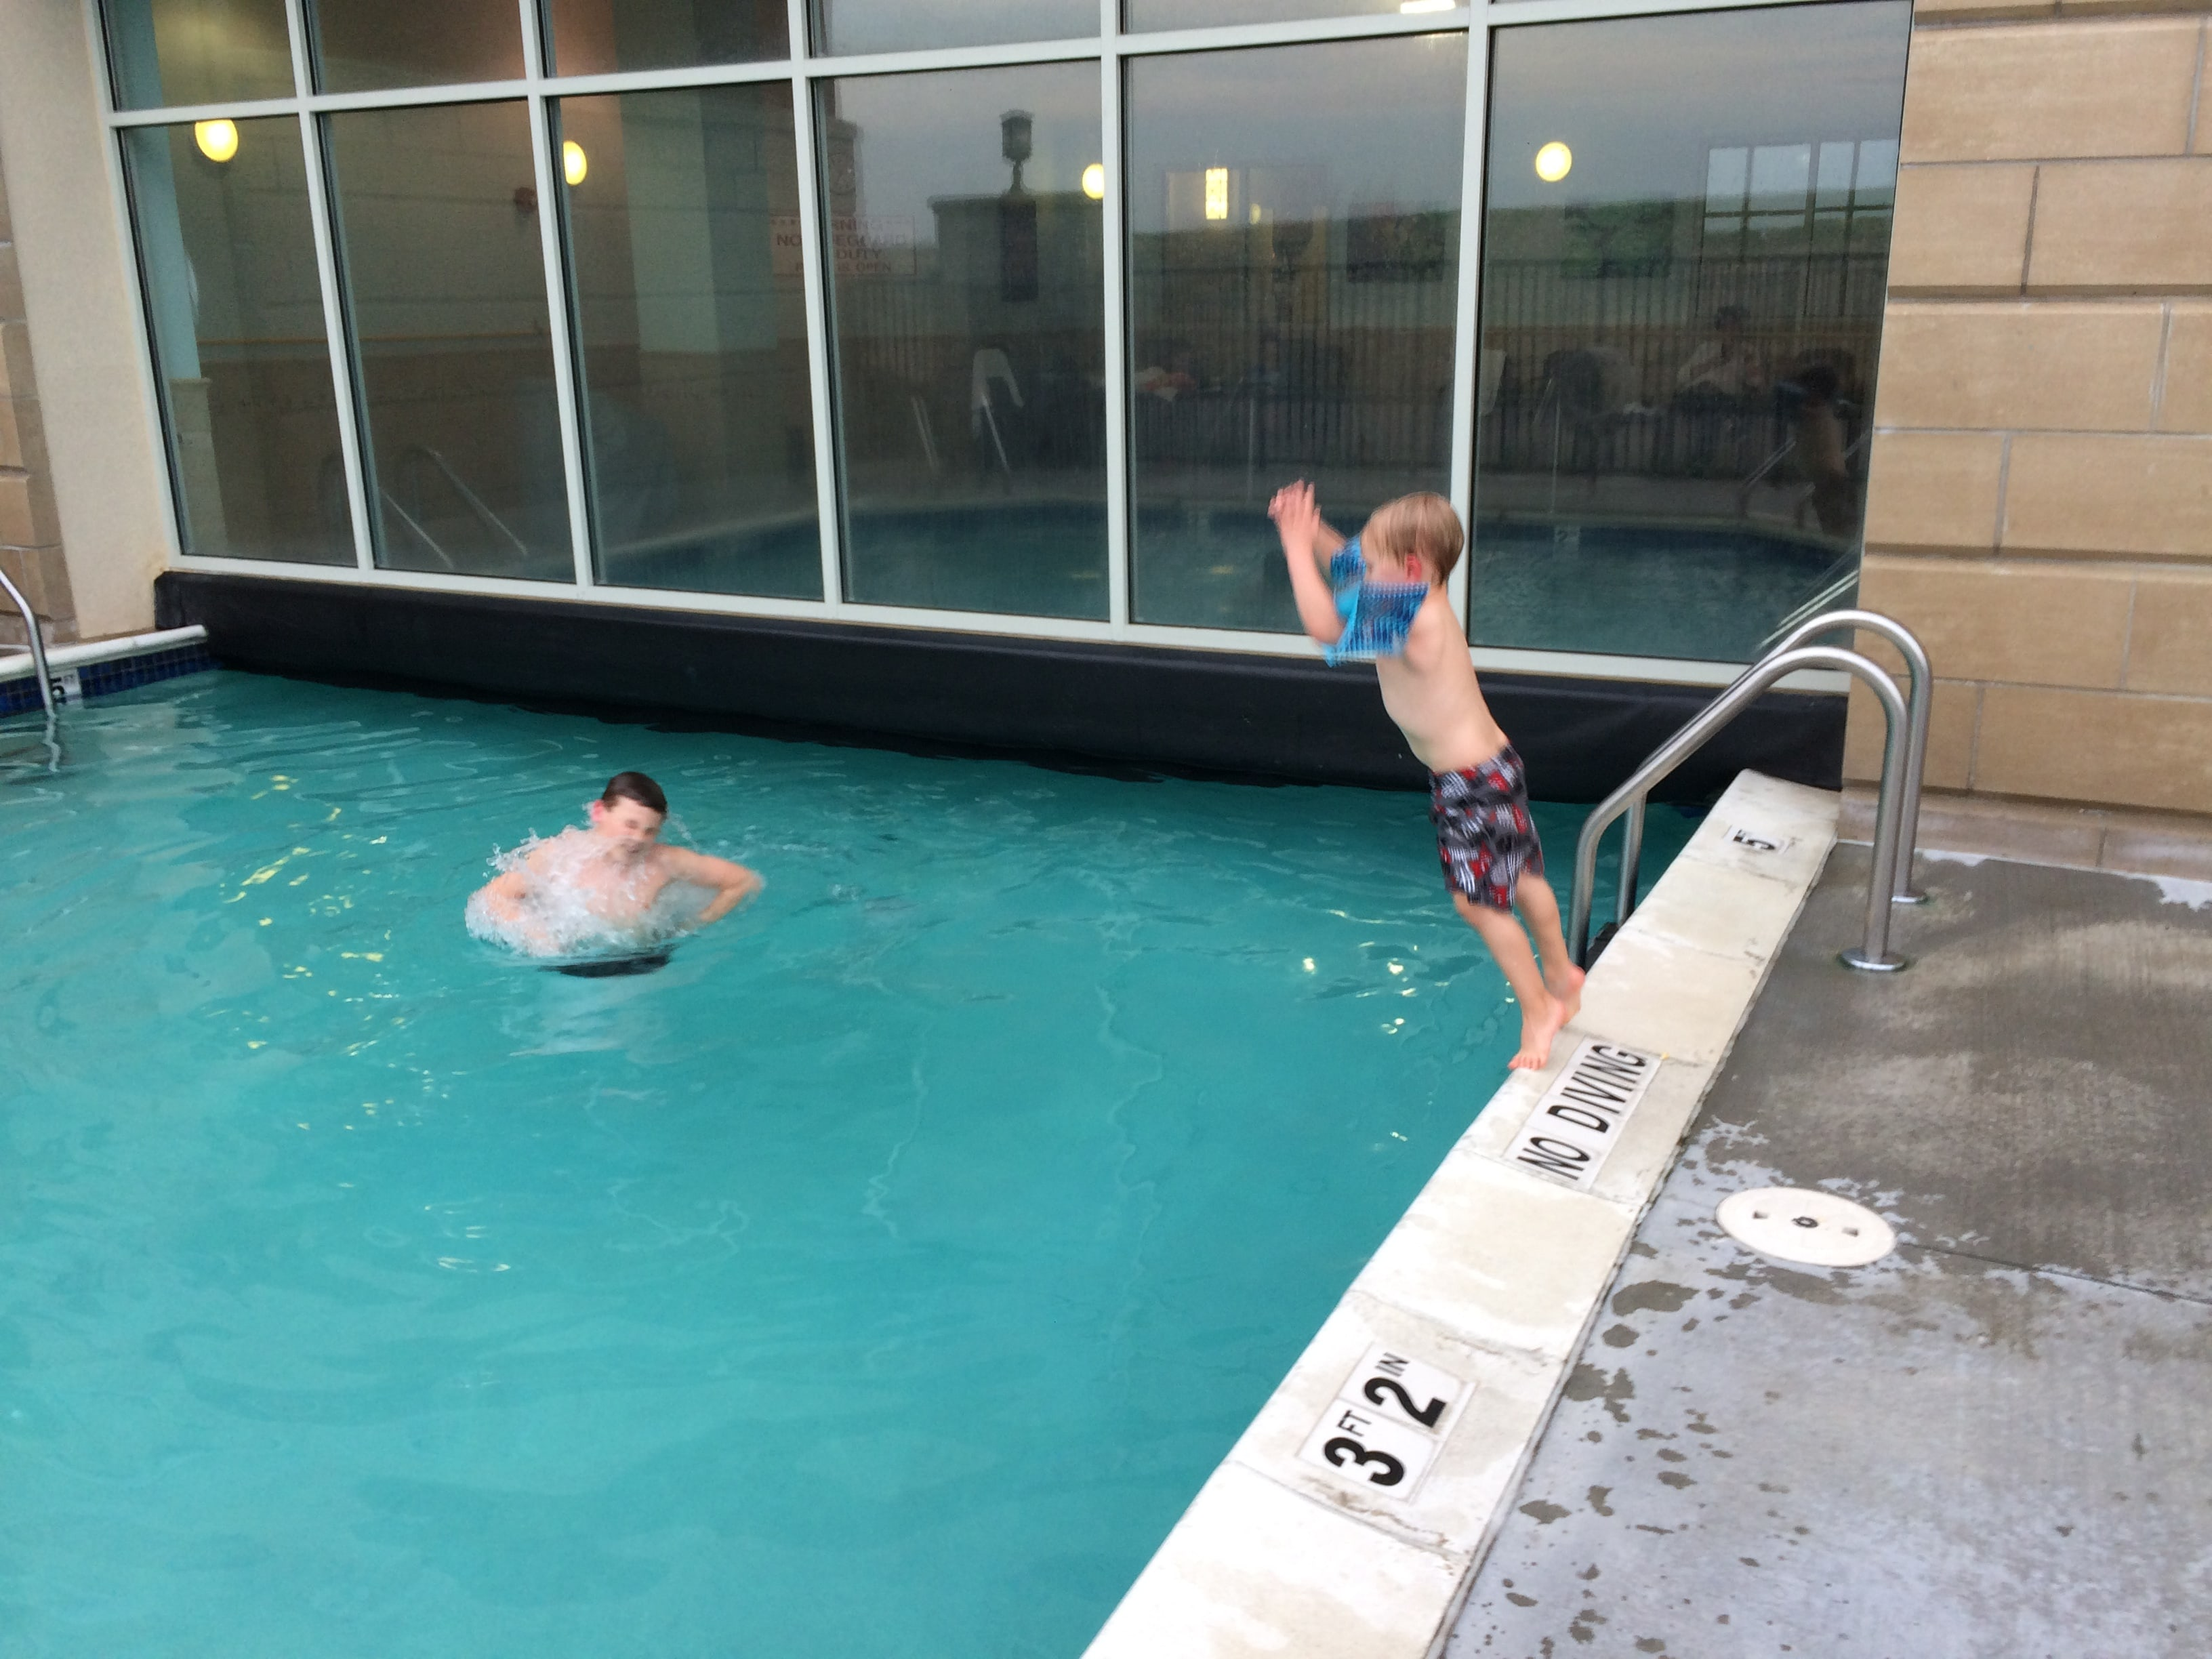 2 boys in Drury hotel swimming pool